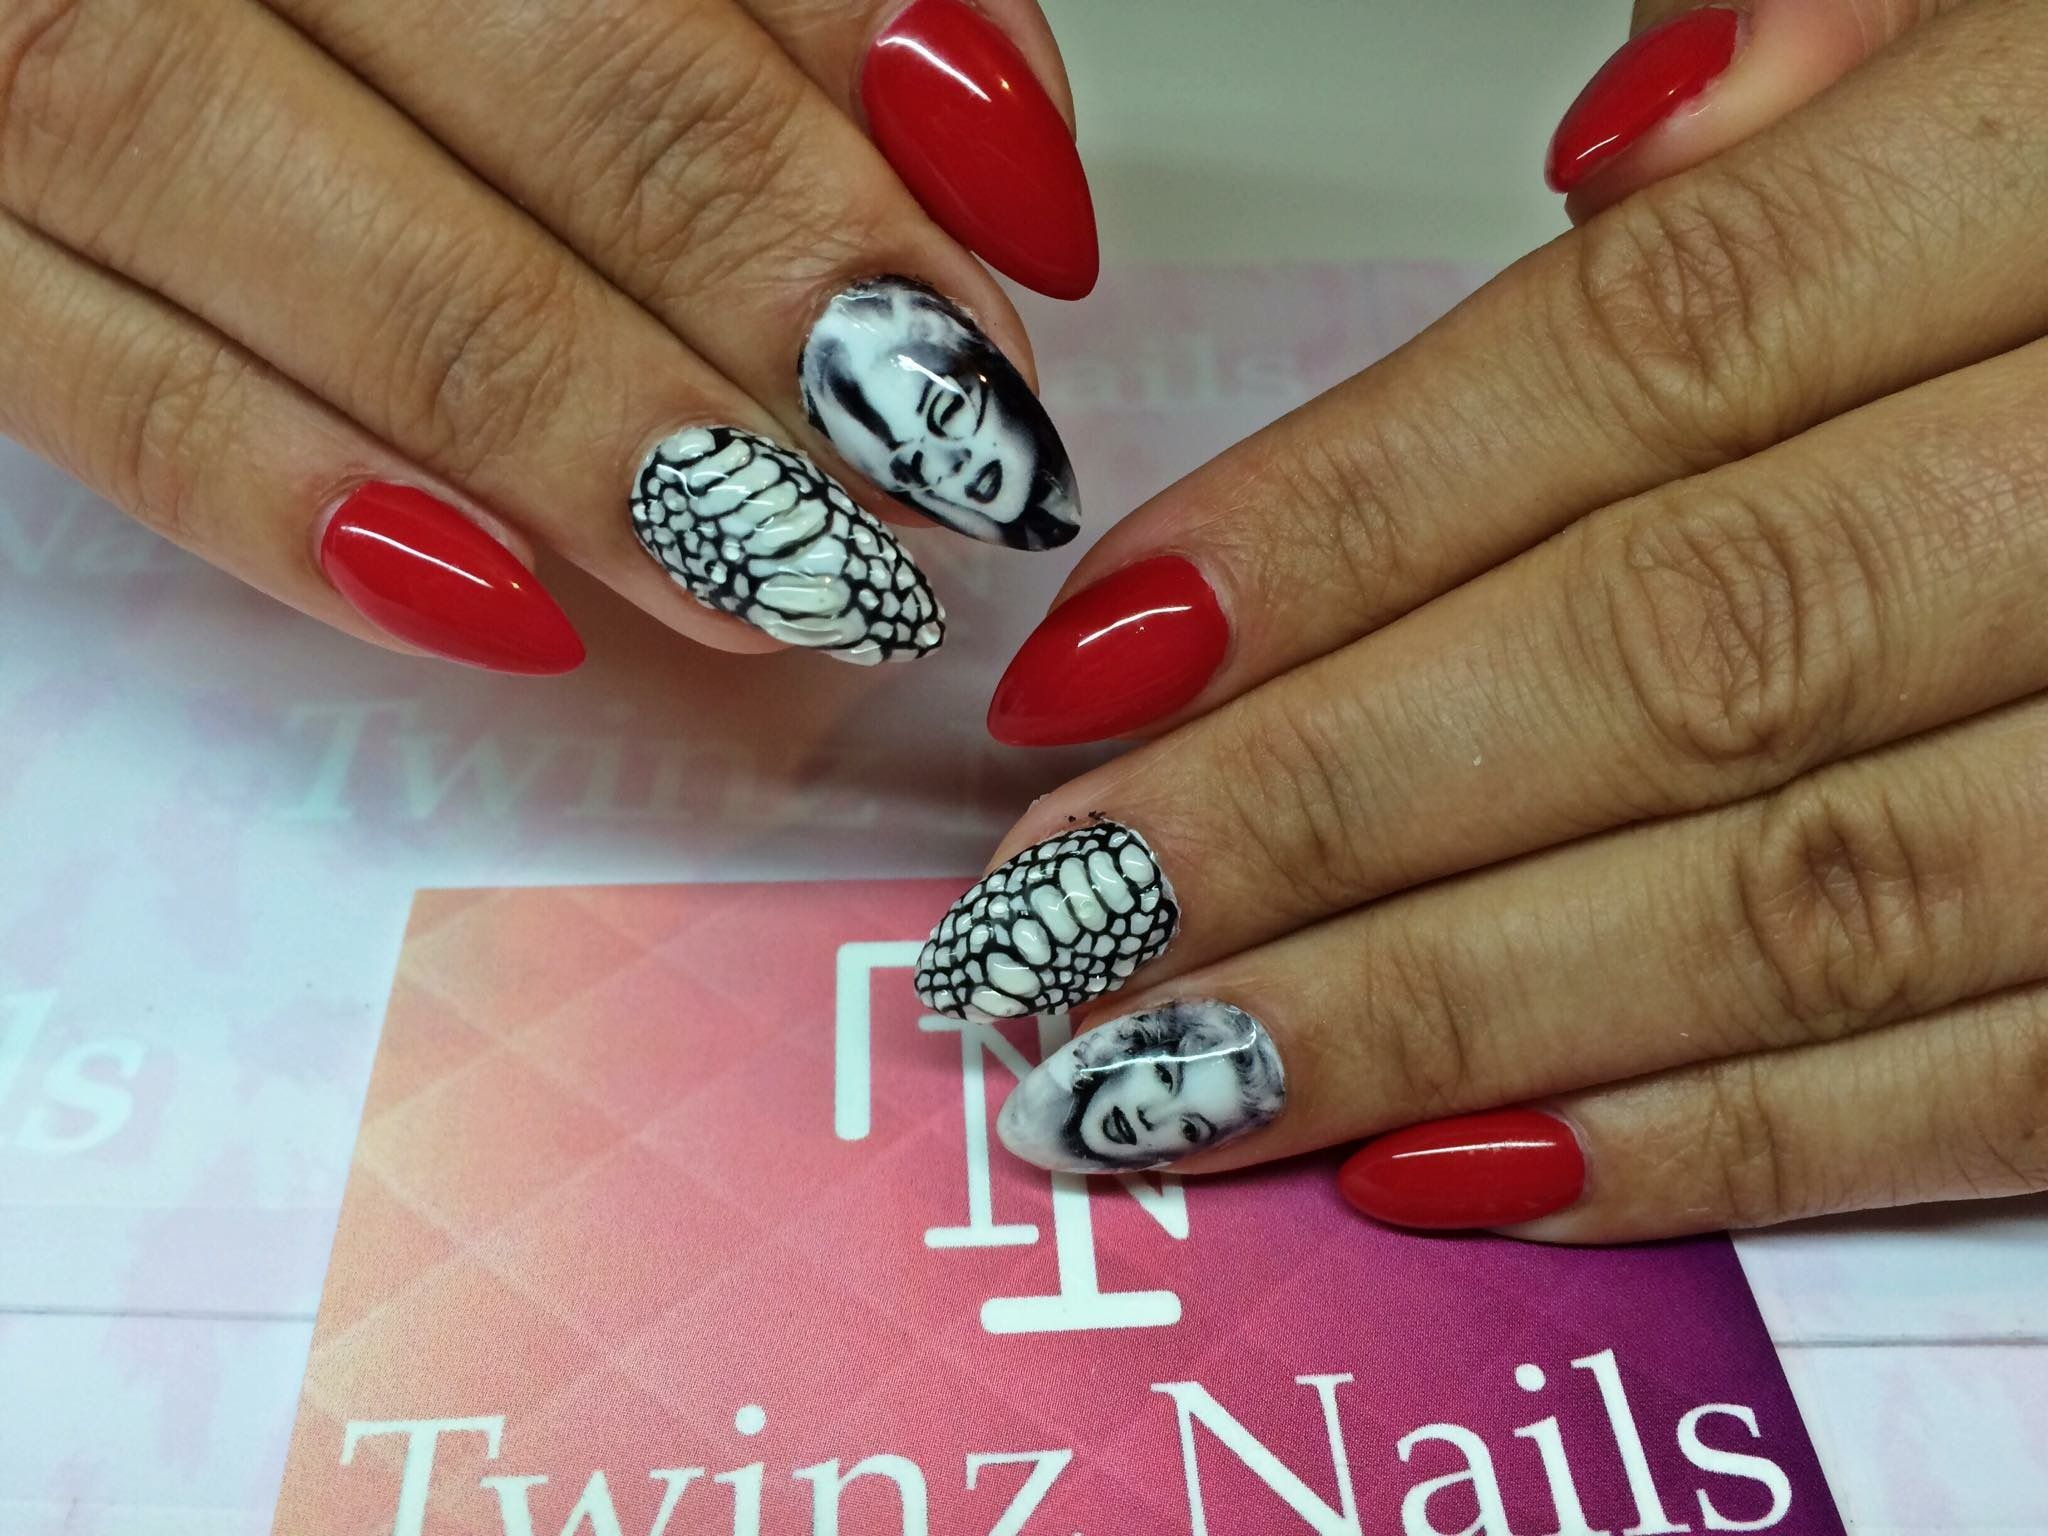 Marilyn Monroe nails by @twinznails | Character Nails and Pop Art ...